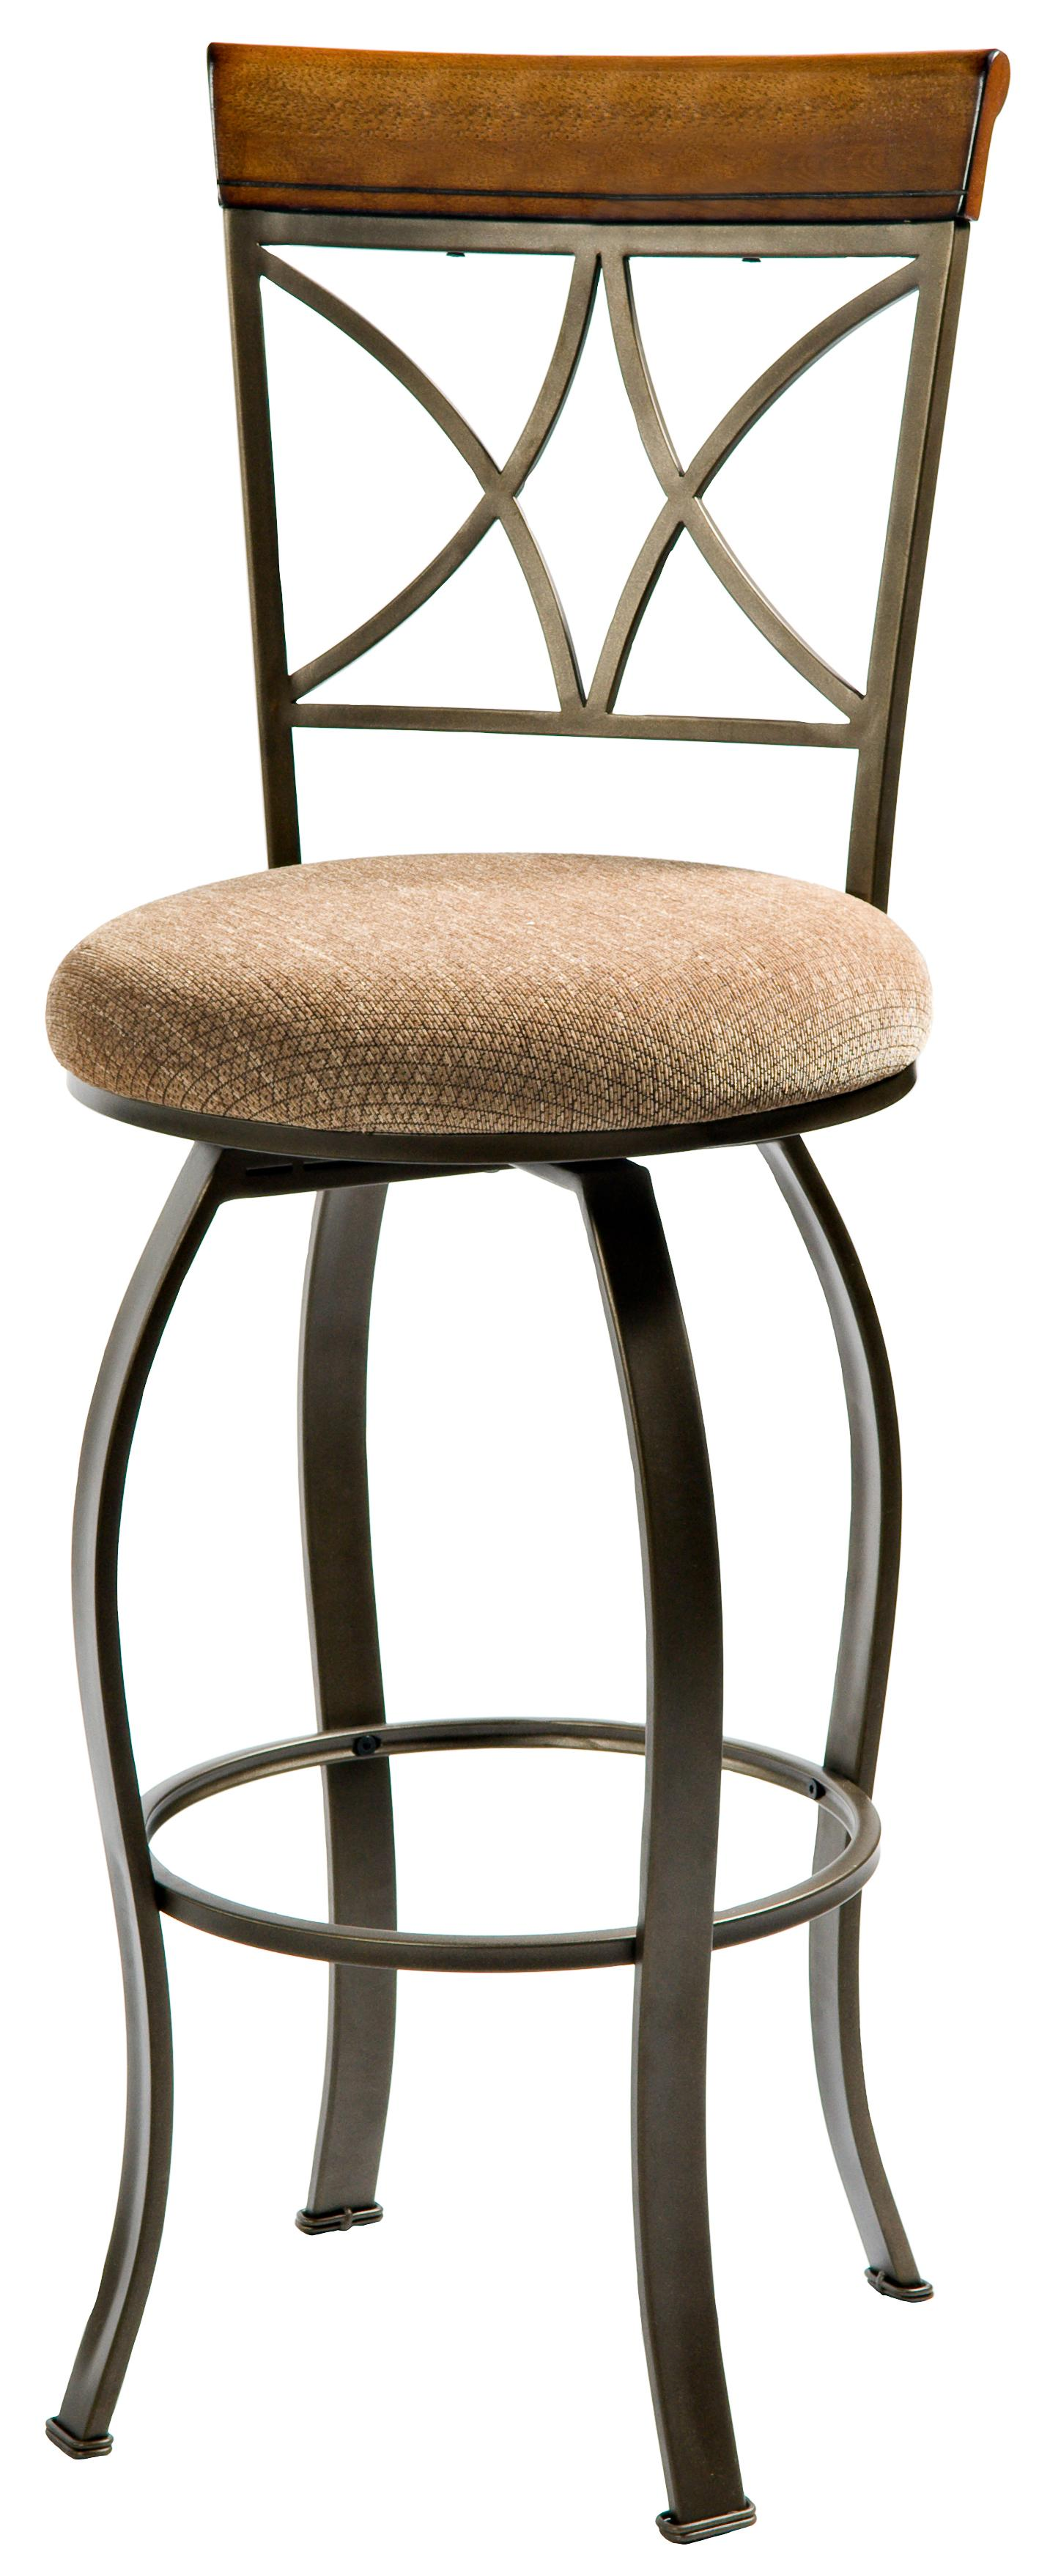 Powell Hamilton Swivel Bar Stool - Item Number: 697-481